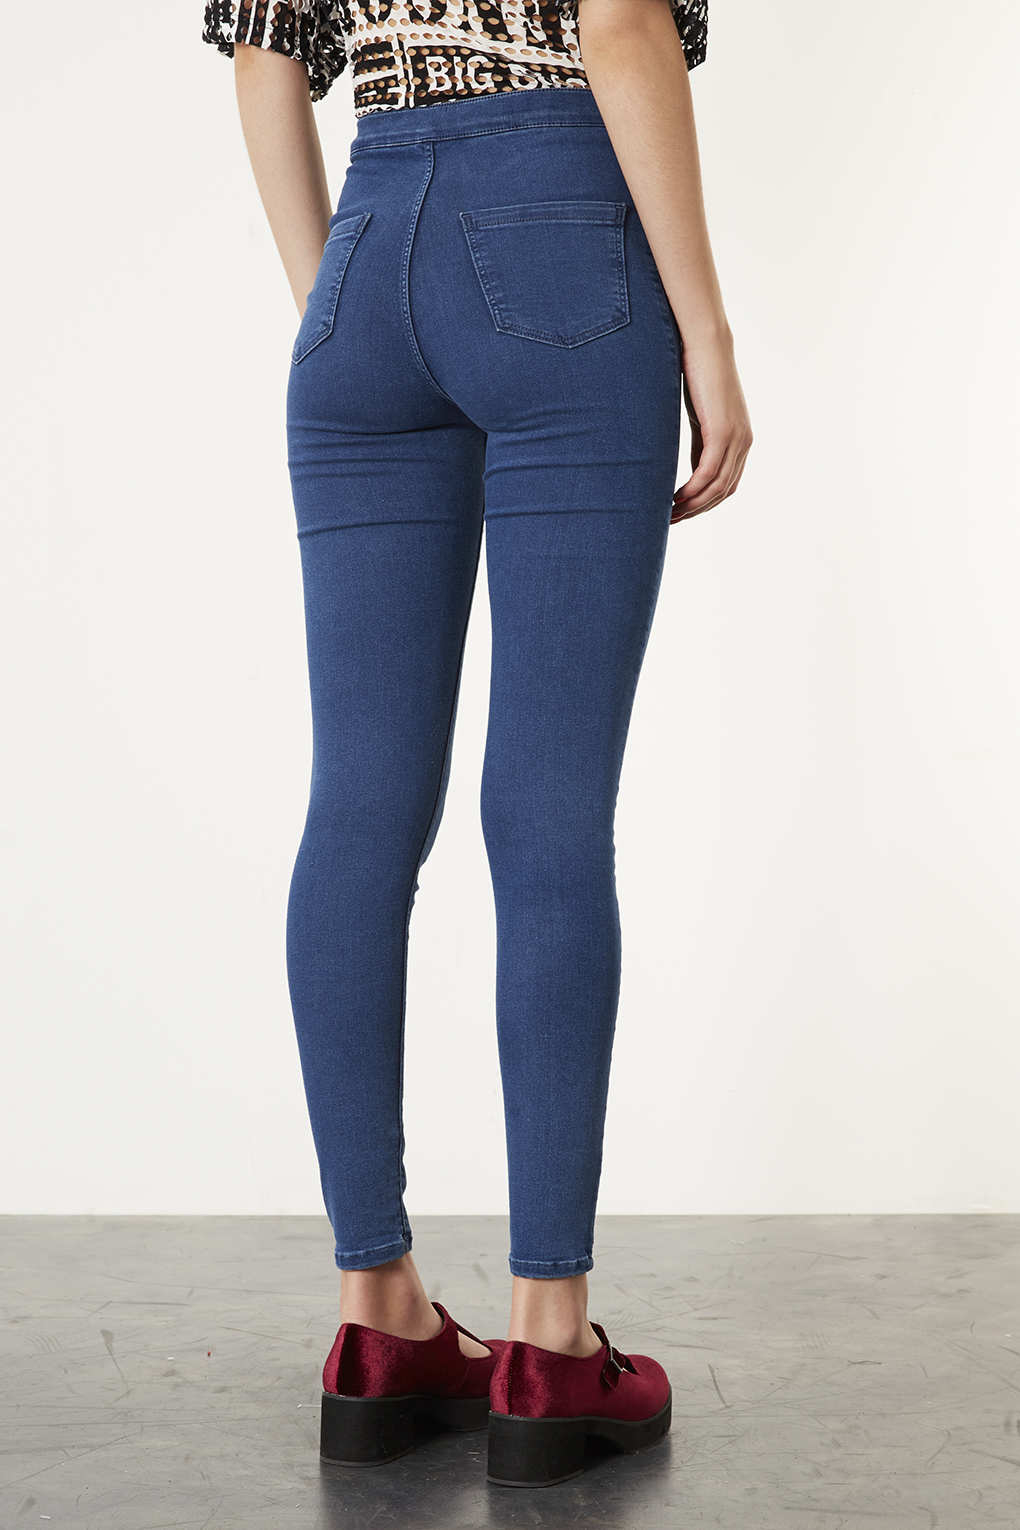 Take your style to the next level with a pair of high waist jeans from this inspired line by Gap. Blue jeans are classic American fashion, and they come in all sorts of shapes, cuts and washes, but there's something special about chic high rise jeans.